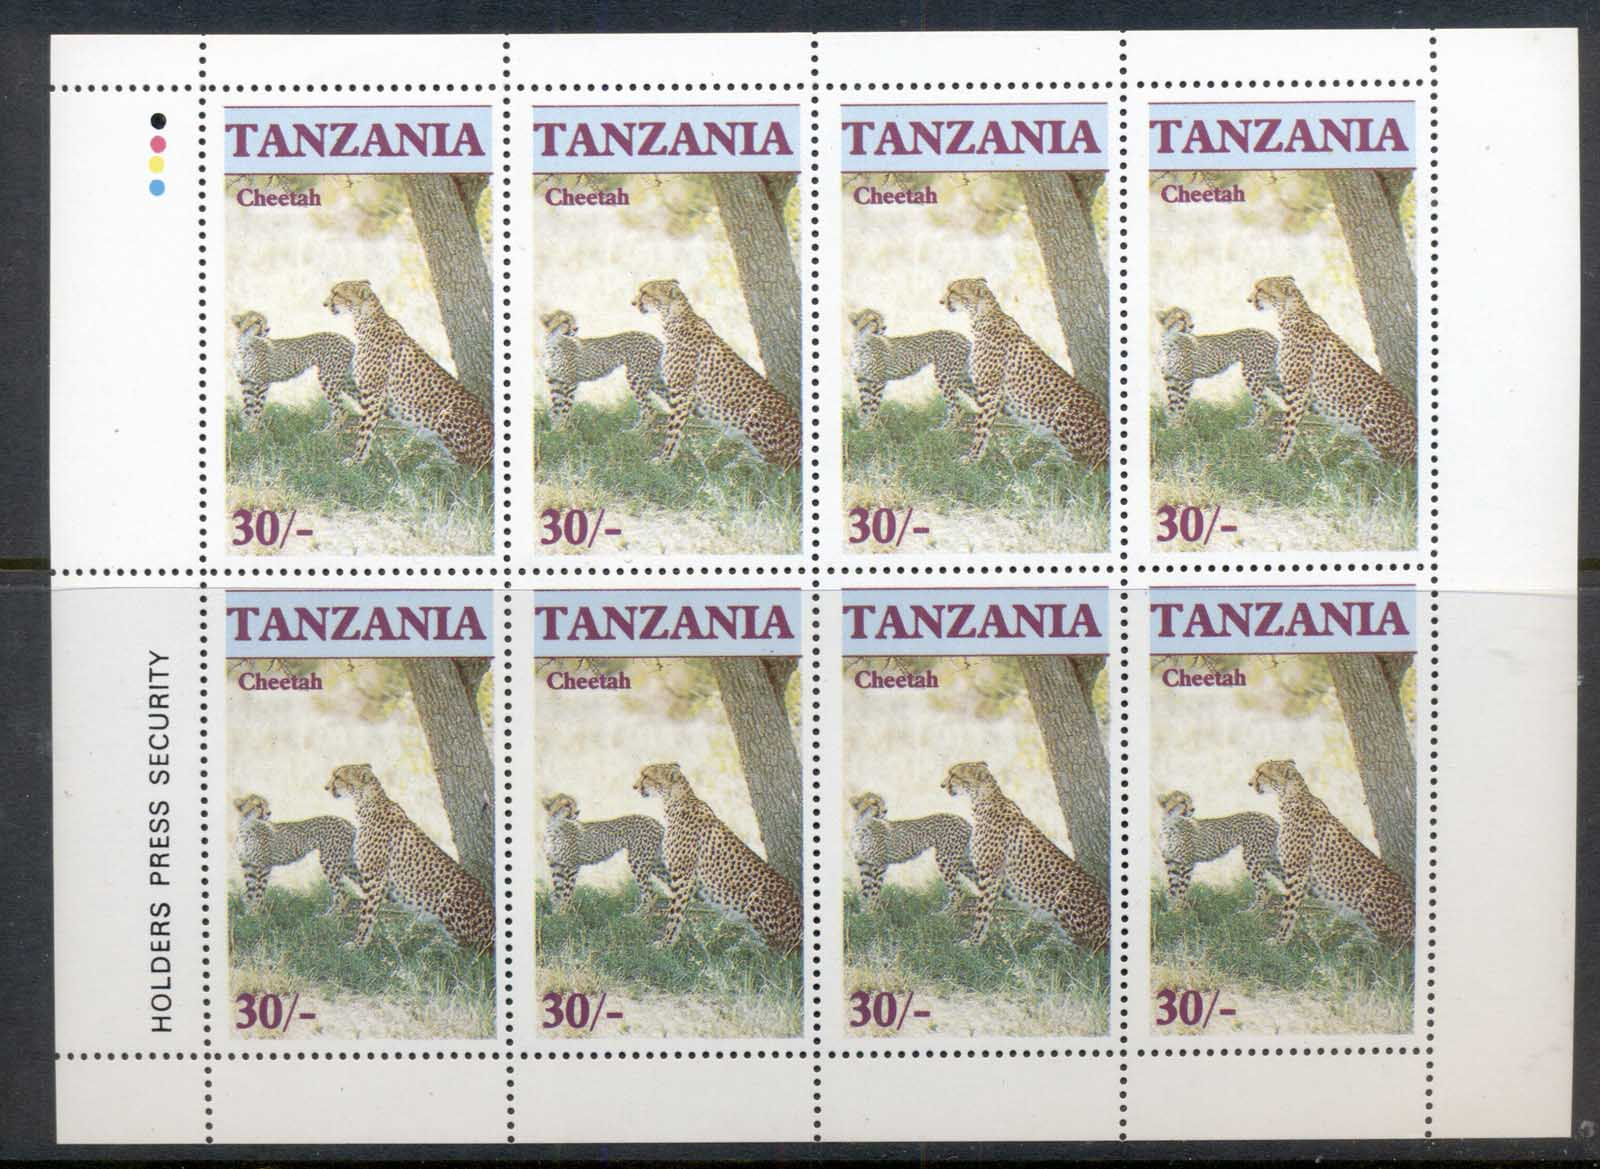 Tanzania 1986 Endangered Wildlife, Cheetah 30/- sheetlet MUH